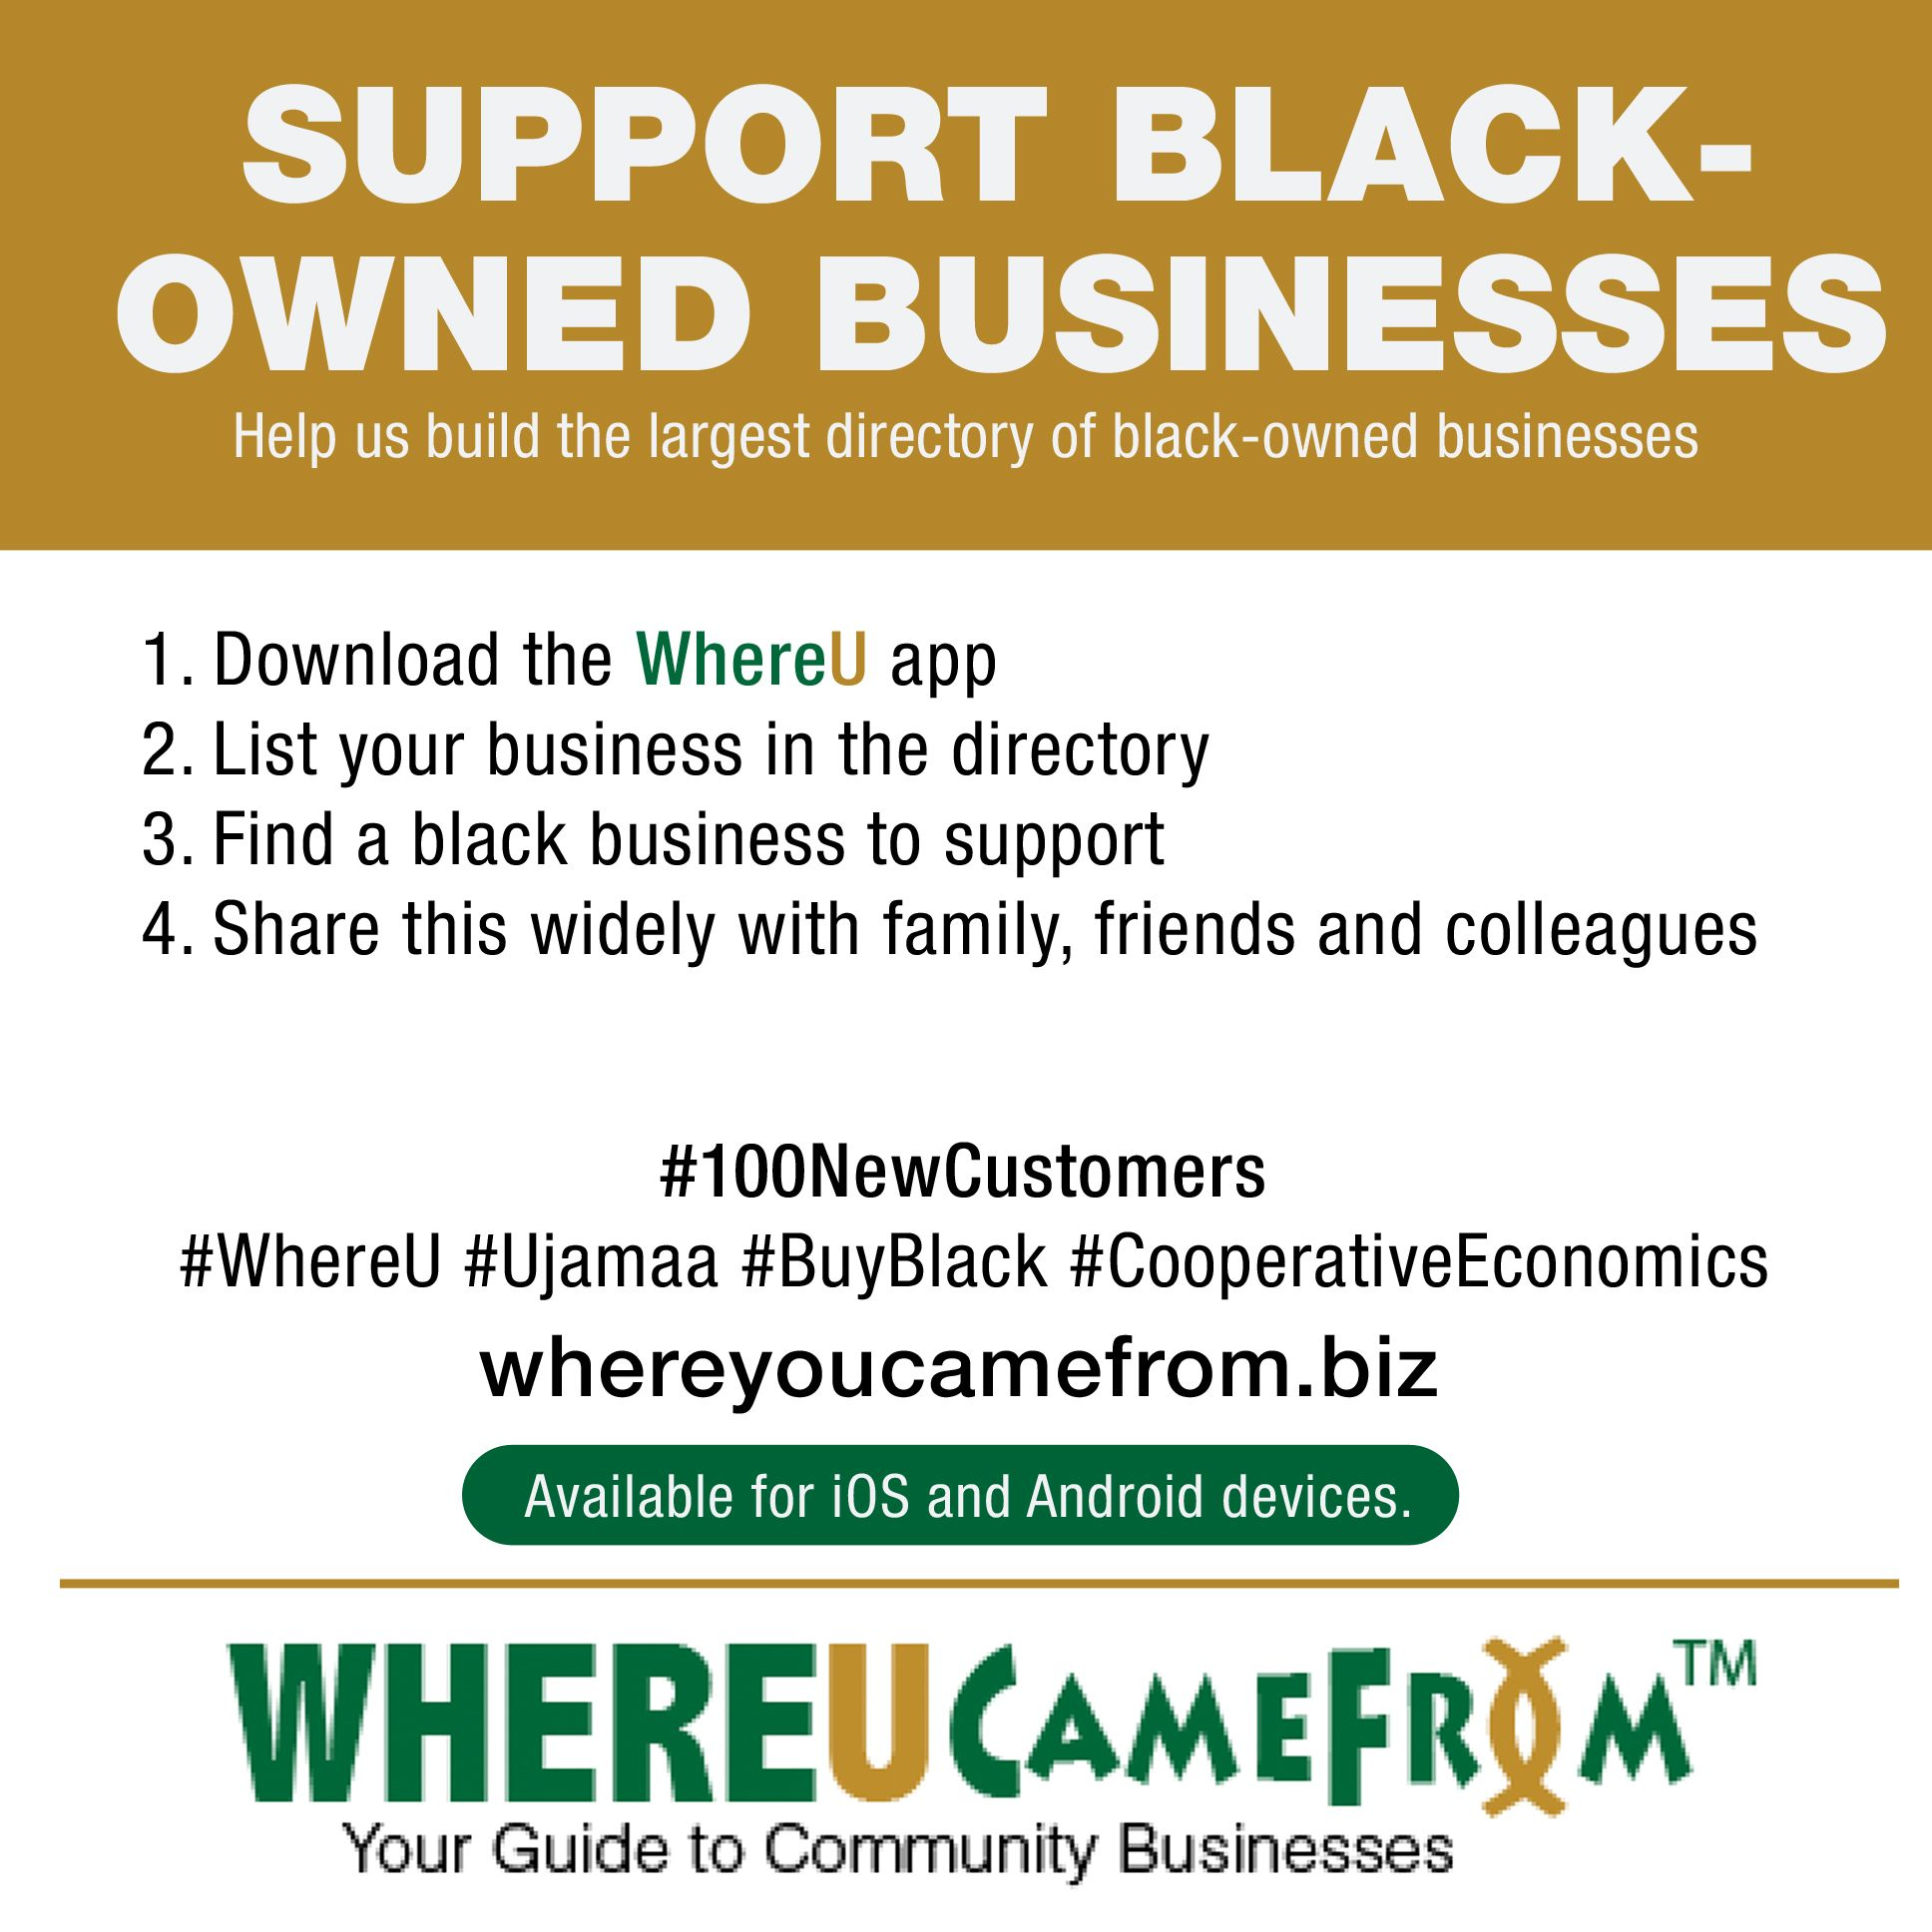 Like a Yelp for black owned biz. Very cool. Supportive